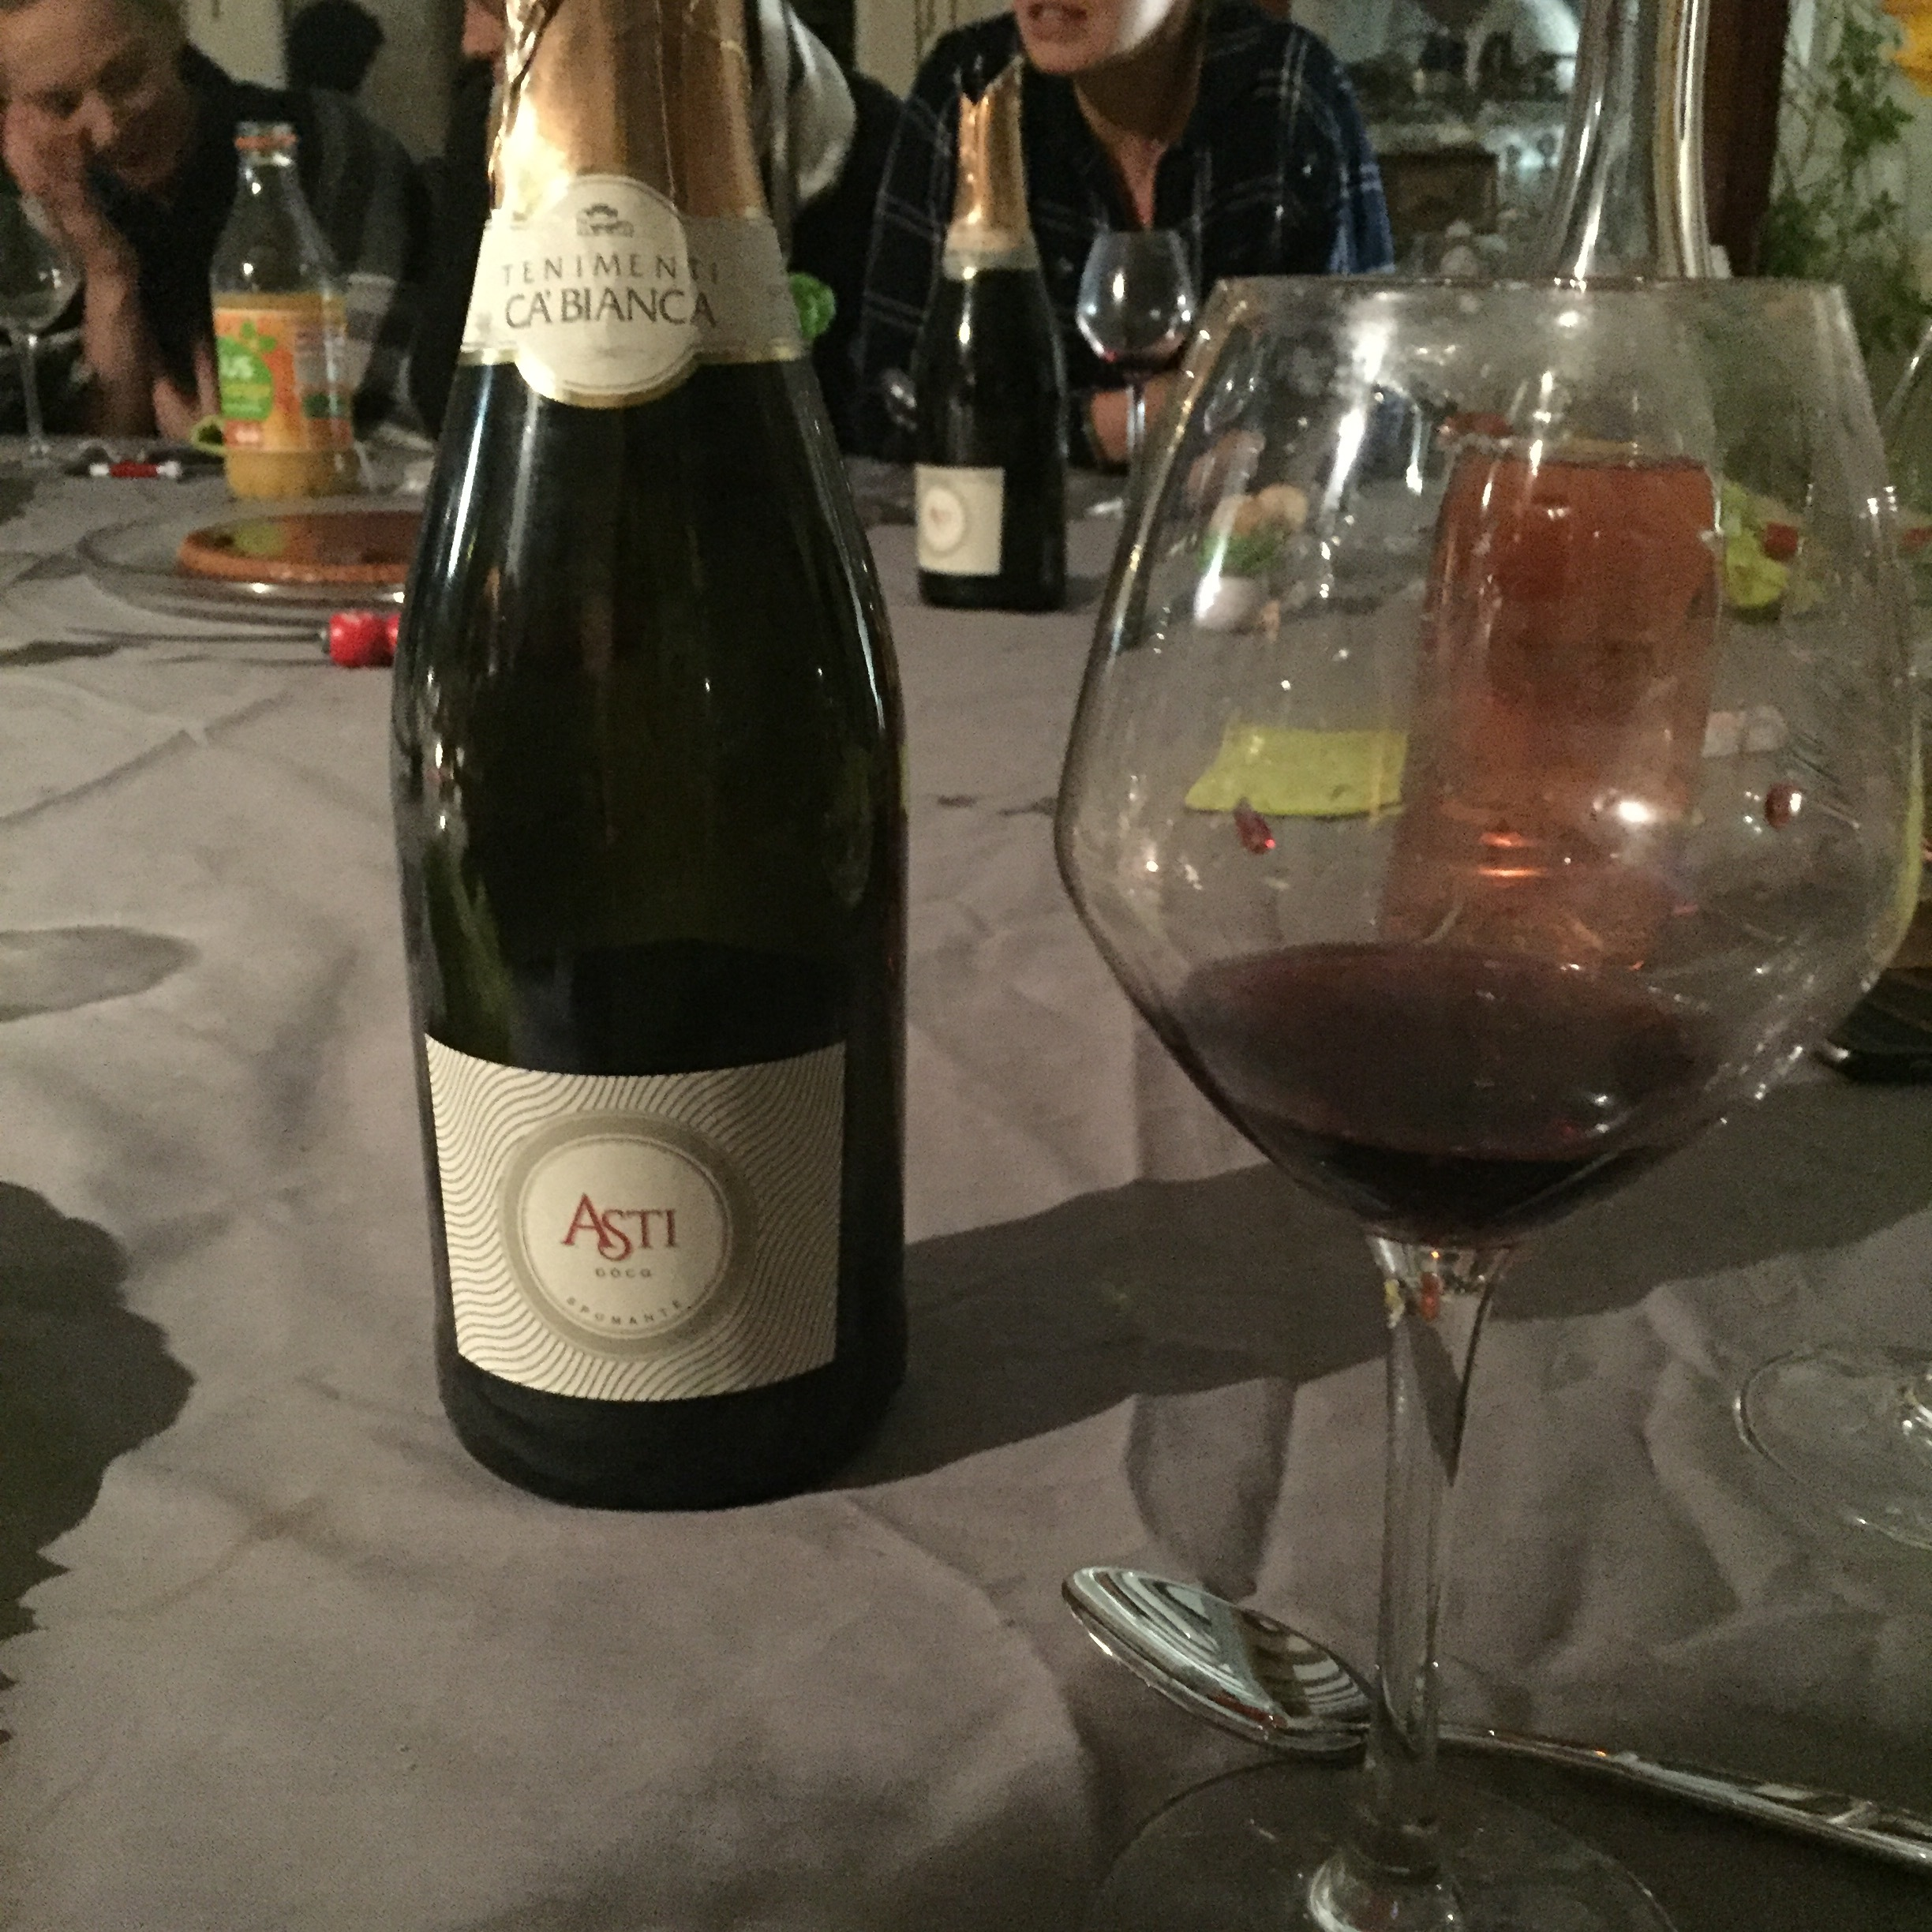 Wine at dinner. Was not a fan of the red wine, but the Asti was pretty tasty!